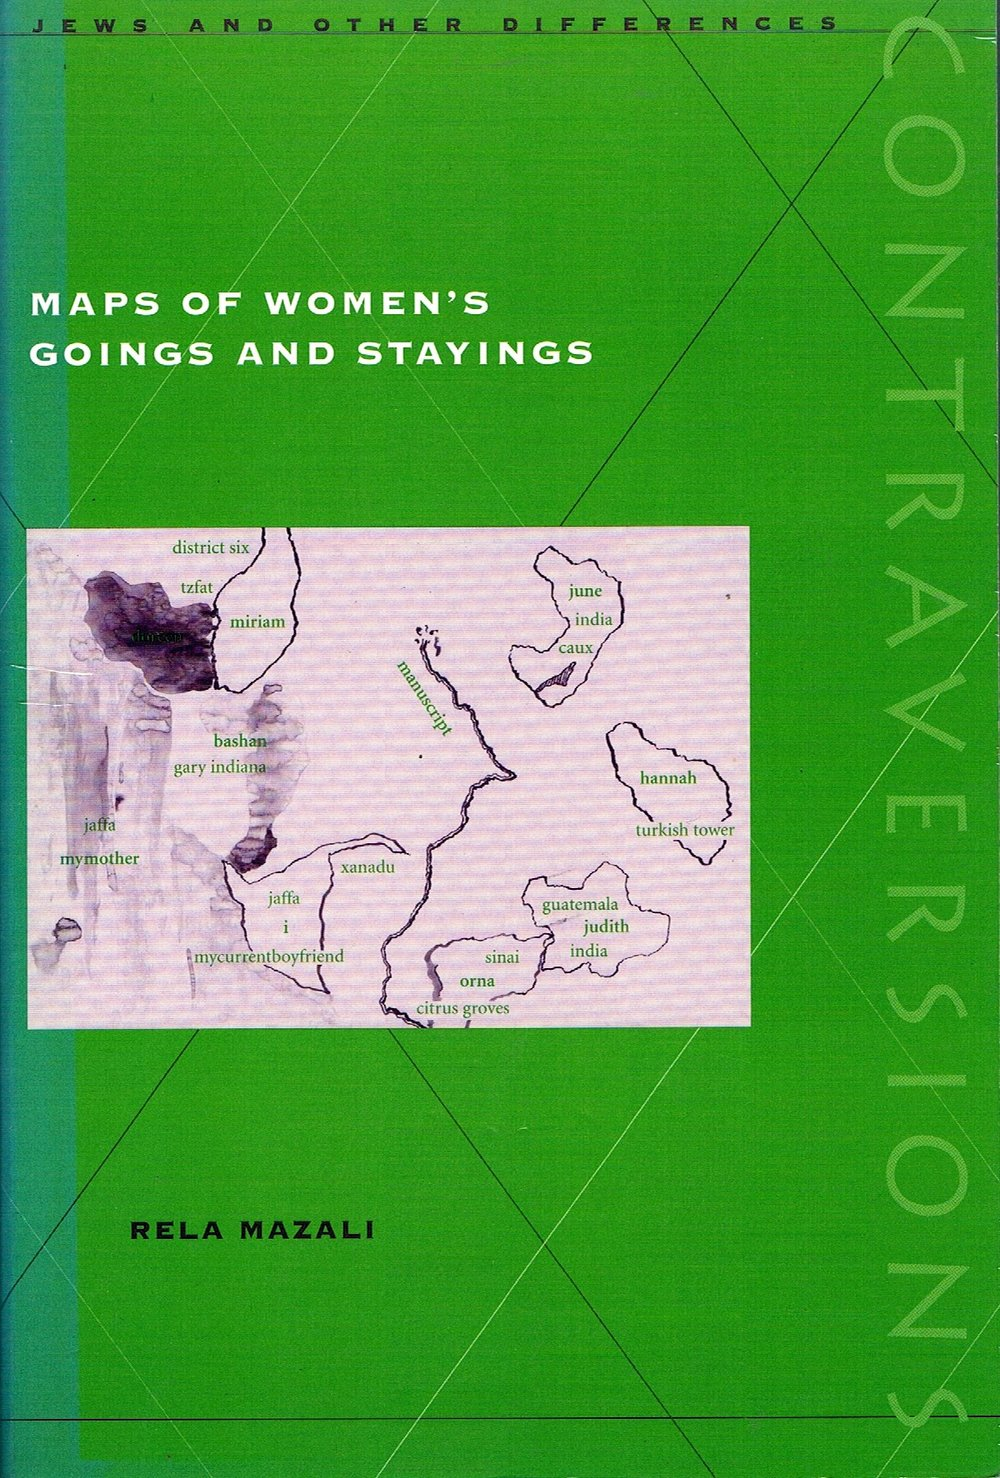 Front cover, 'Maps of Women's Goings and Stayings', Stanford University Press, 2001. Jacket illustration: Rela Mazali, First visit.